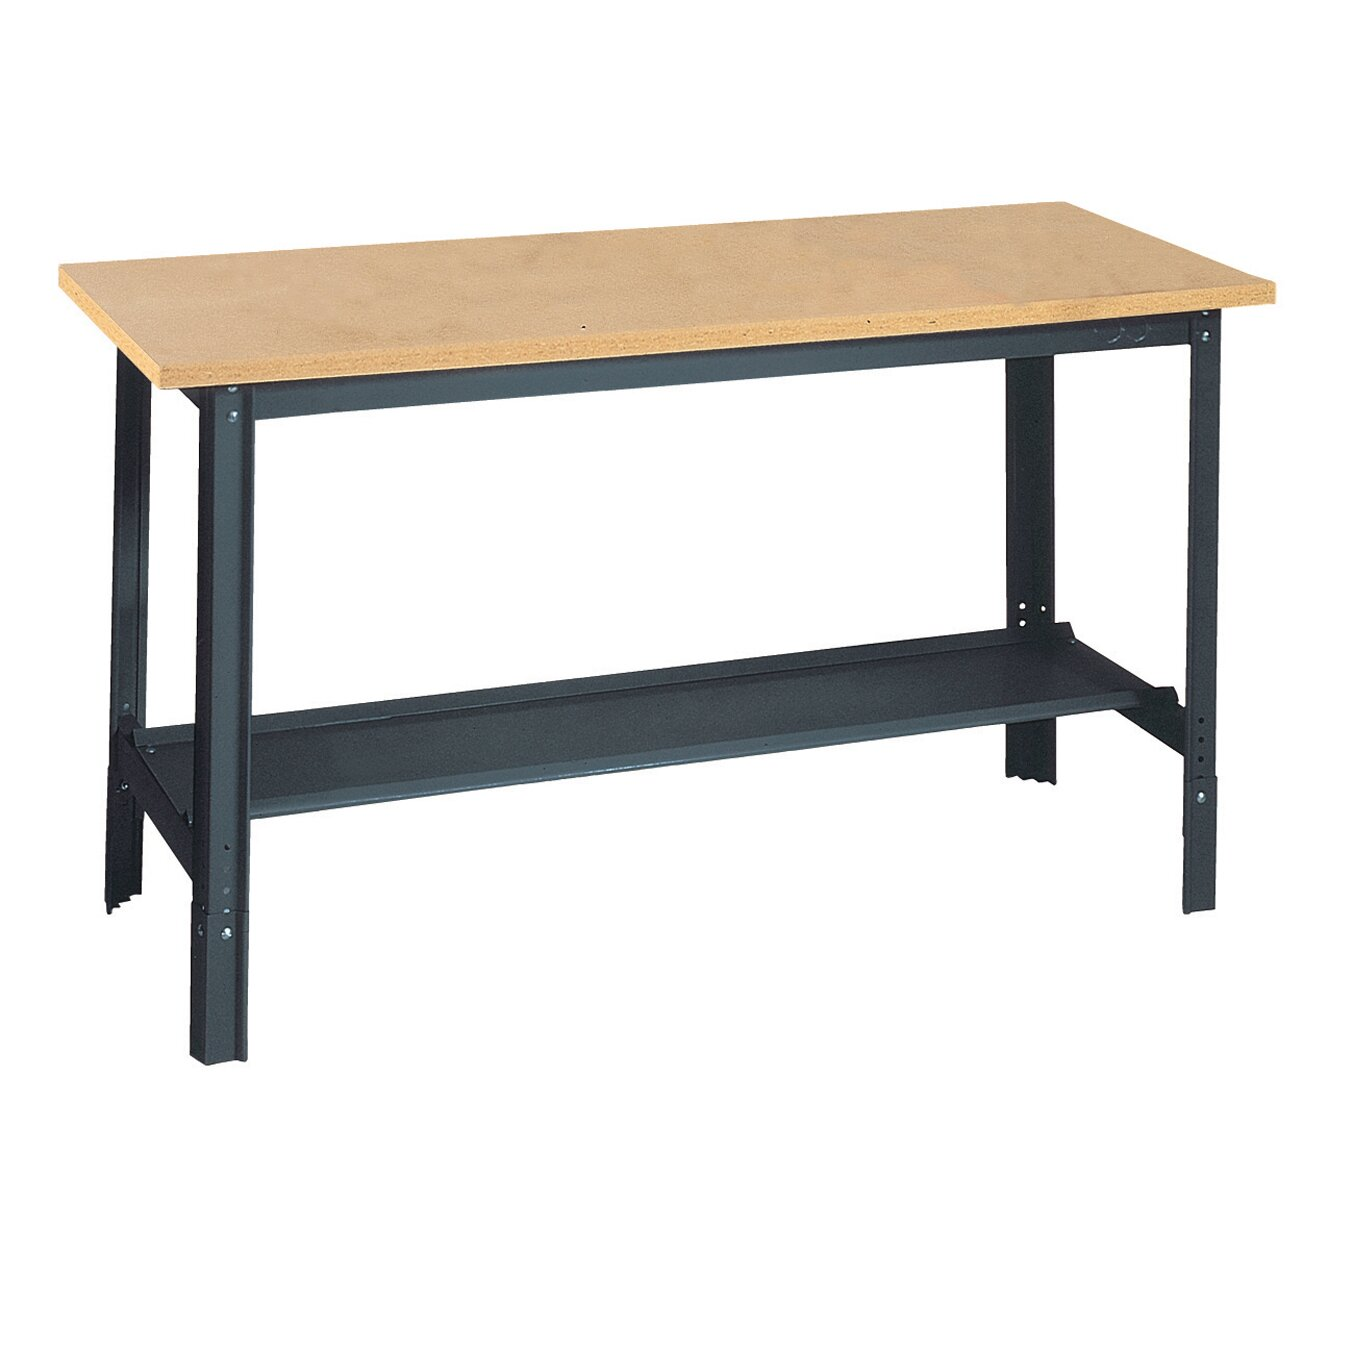 Edsal Sandusky Economy Height Adjustable Particle Board Top Workbench Reviews Wayfair